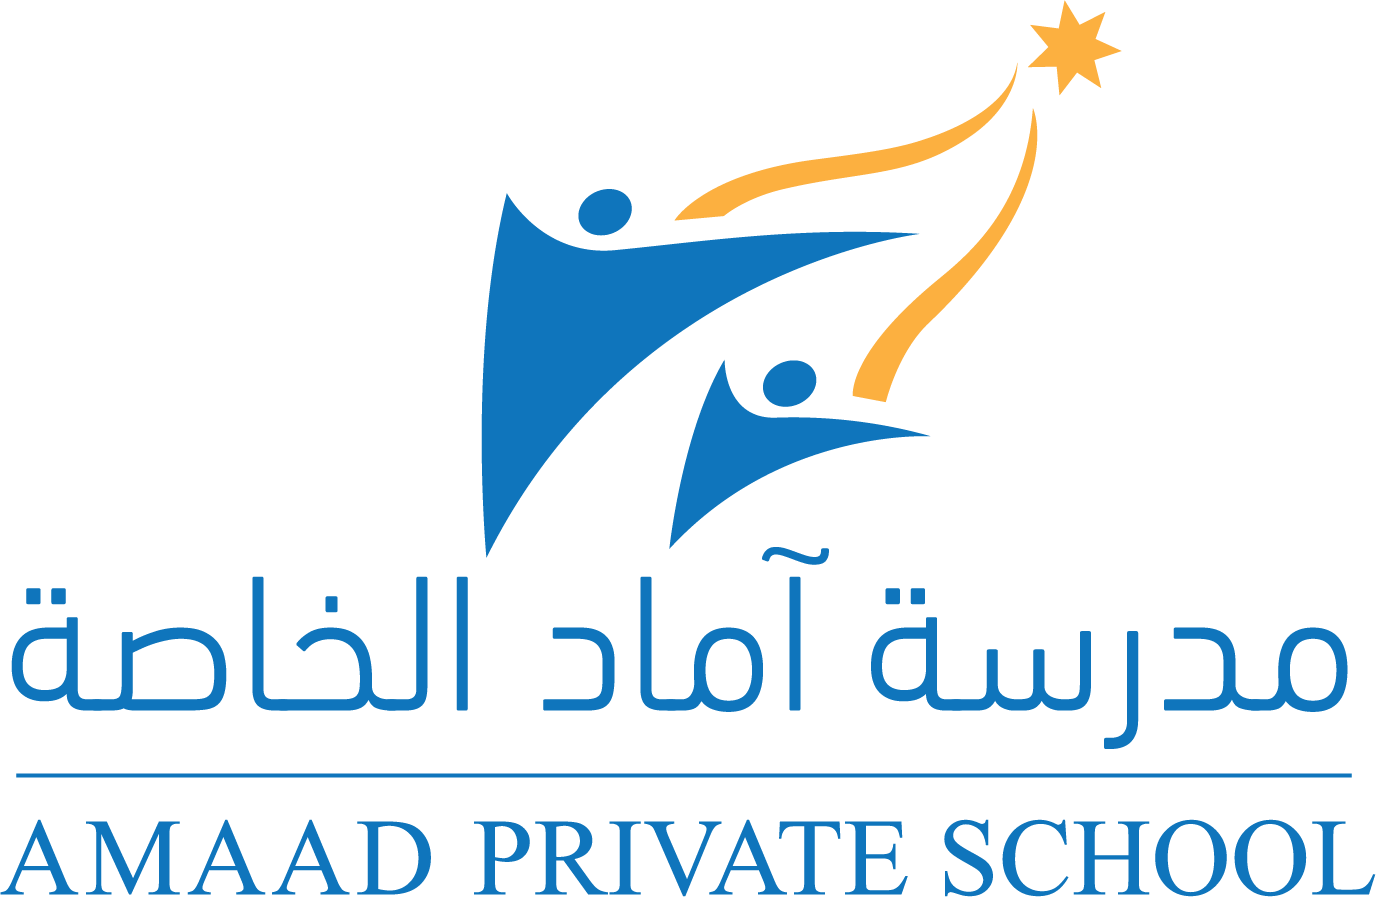 Amaad Private School